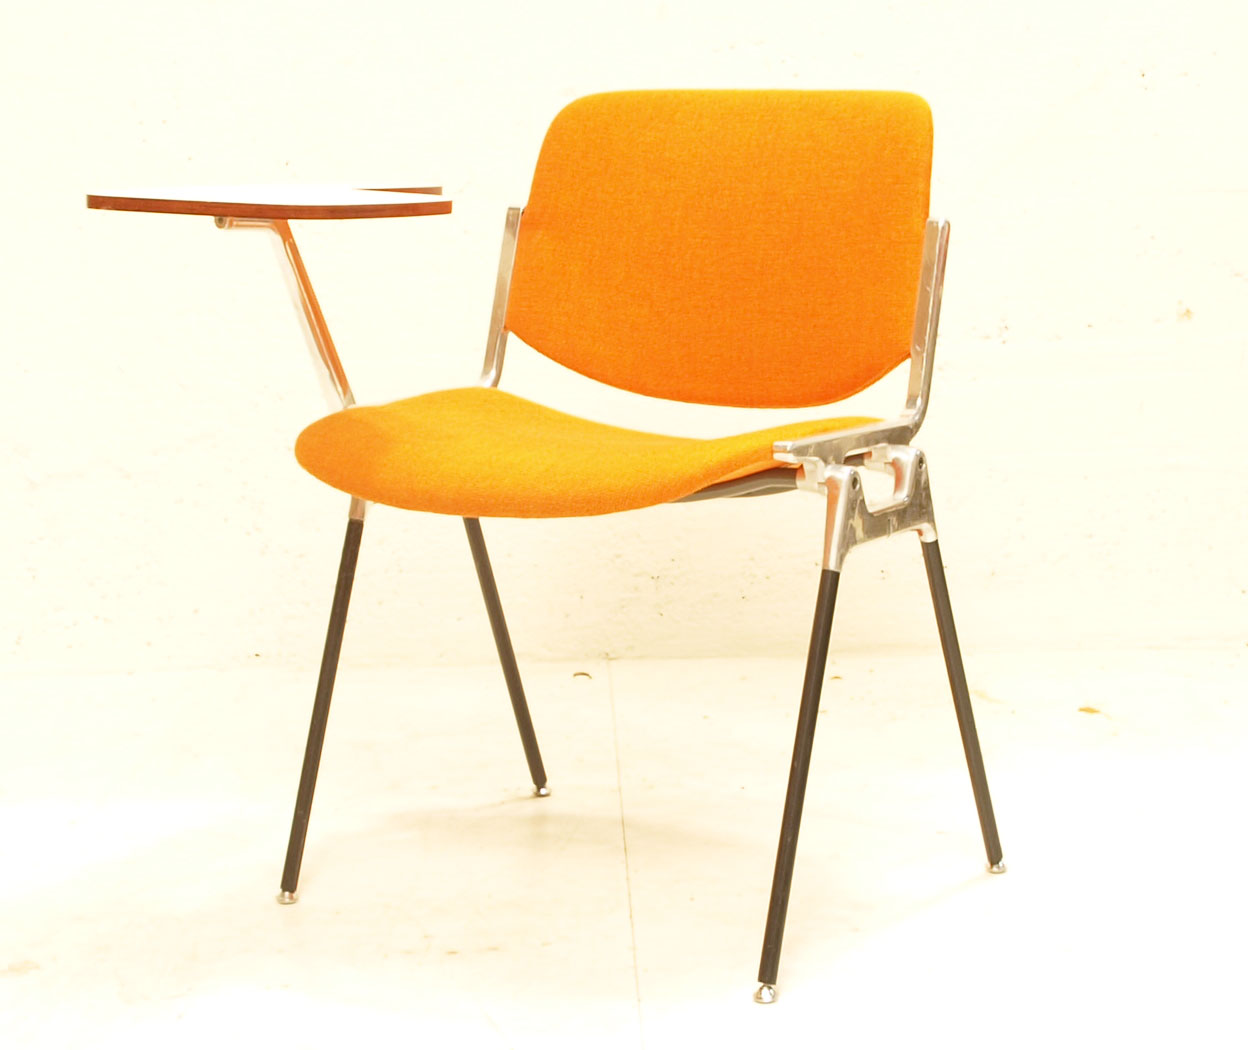 Stuhl castelli 1963 stapelbar mit klapptisch m bel for Design stuhl orange